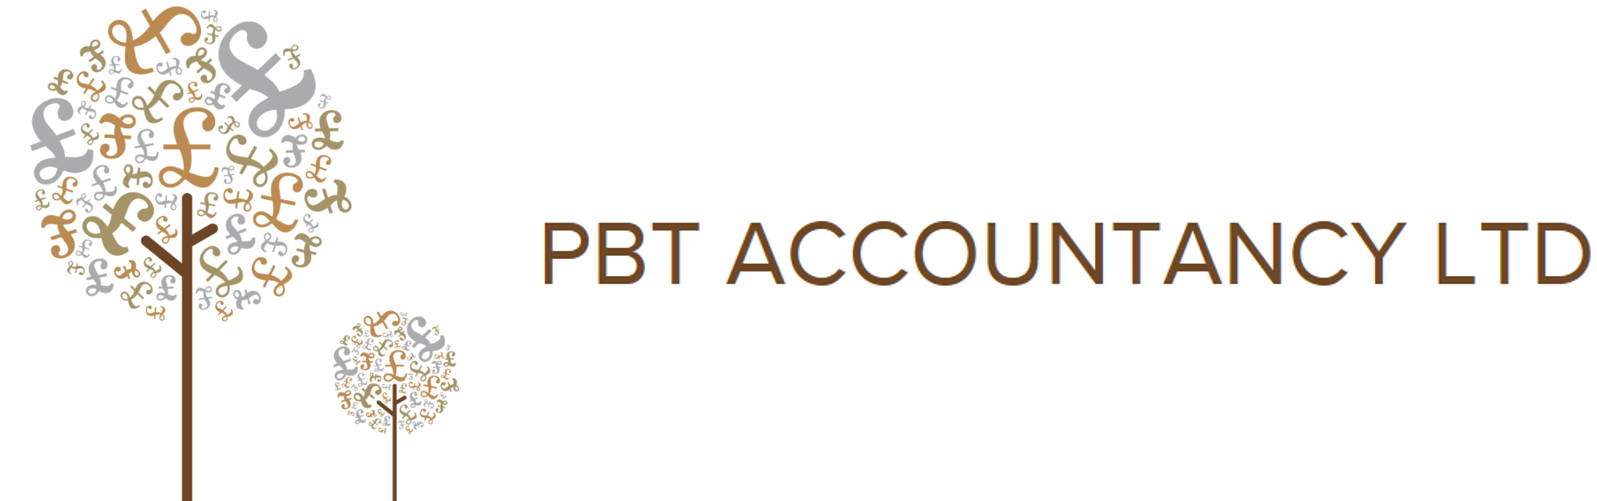 PBT Accountancy Limited